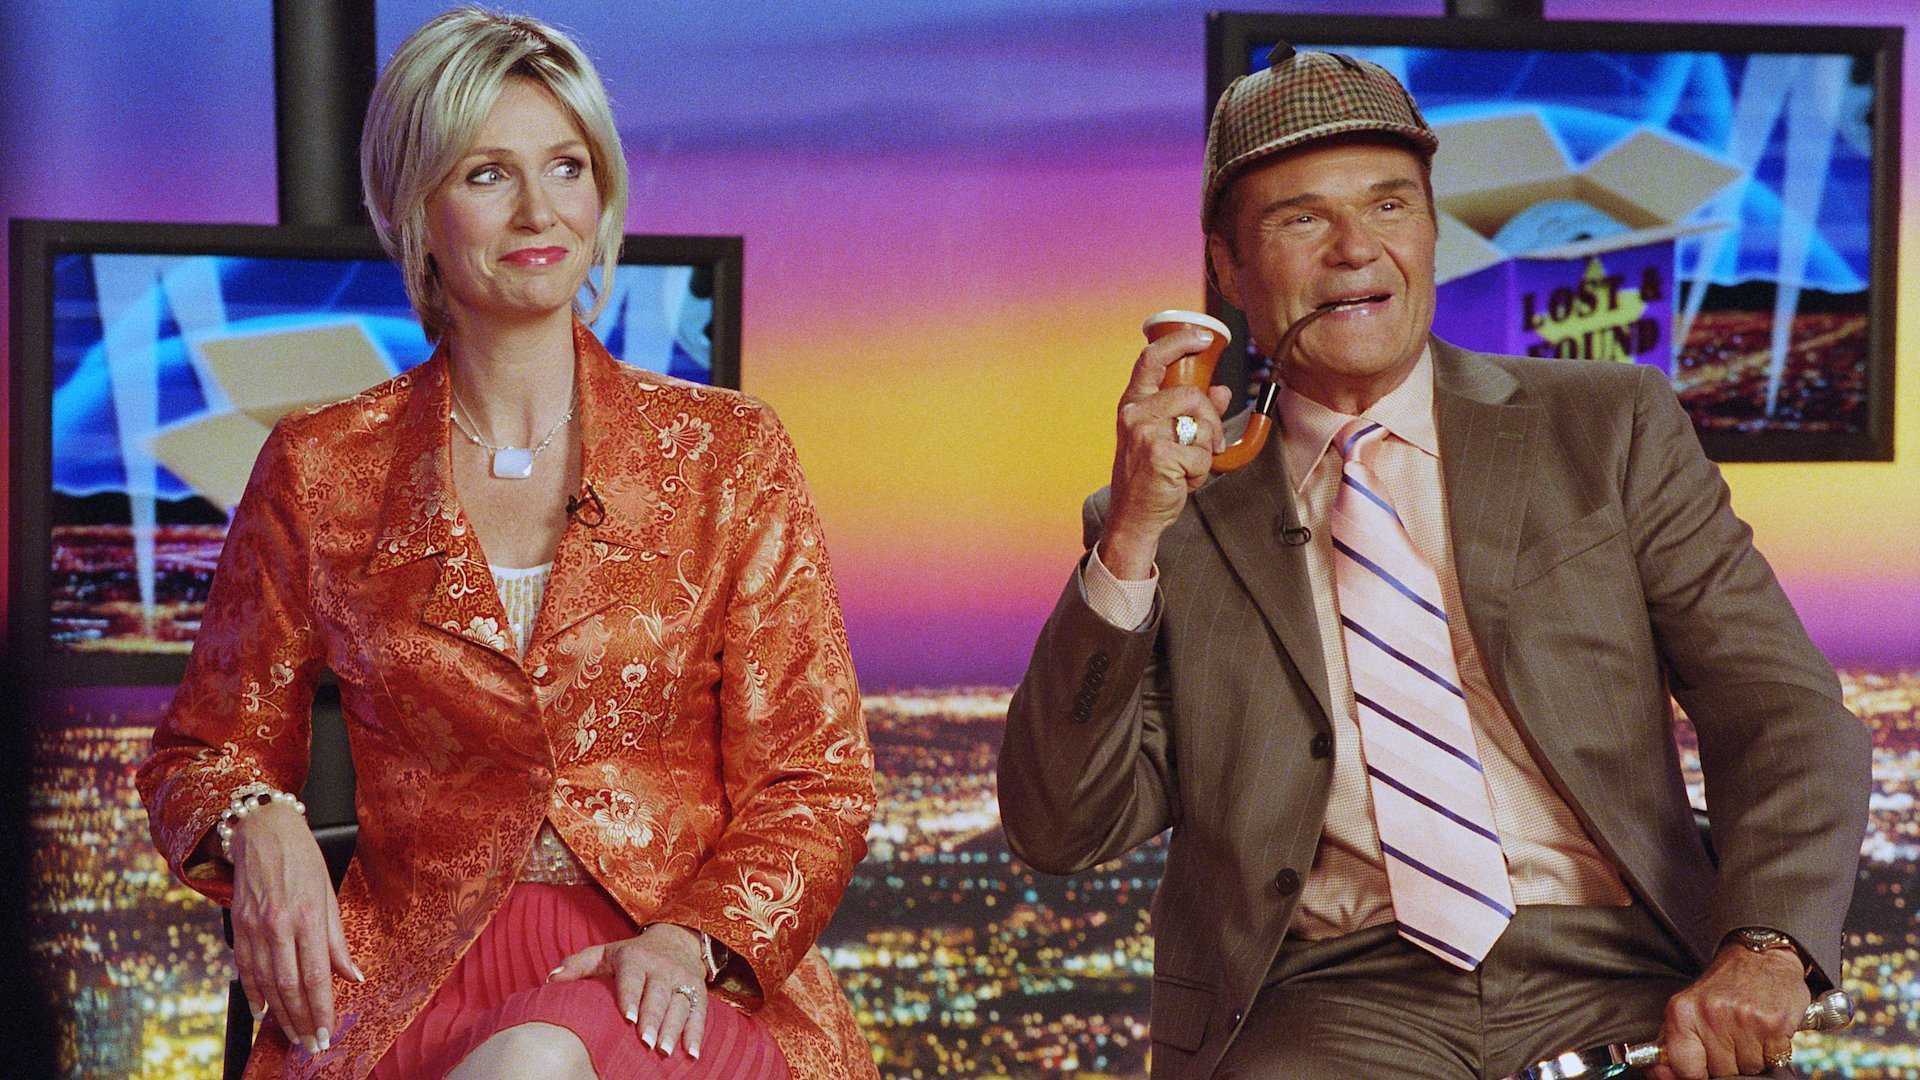 Jane Lynch (left) and Fred Willard (right) in For Your Consideration (2006).